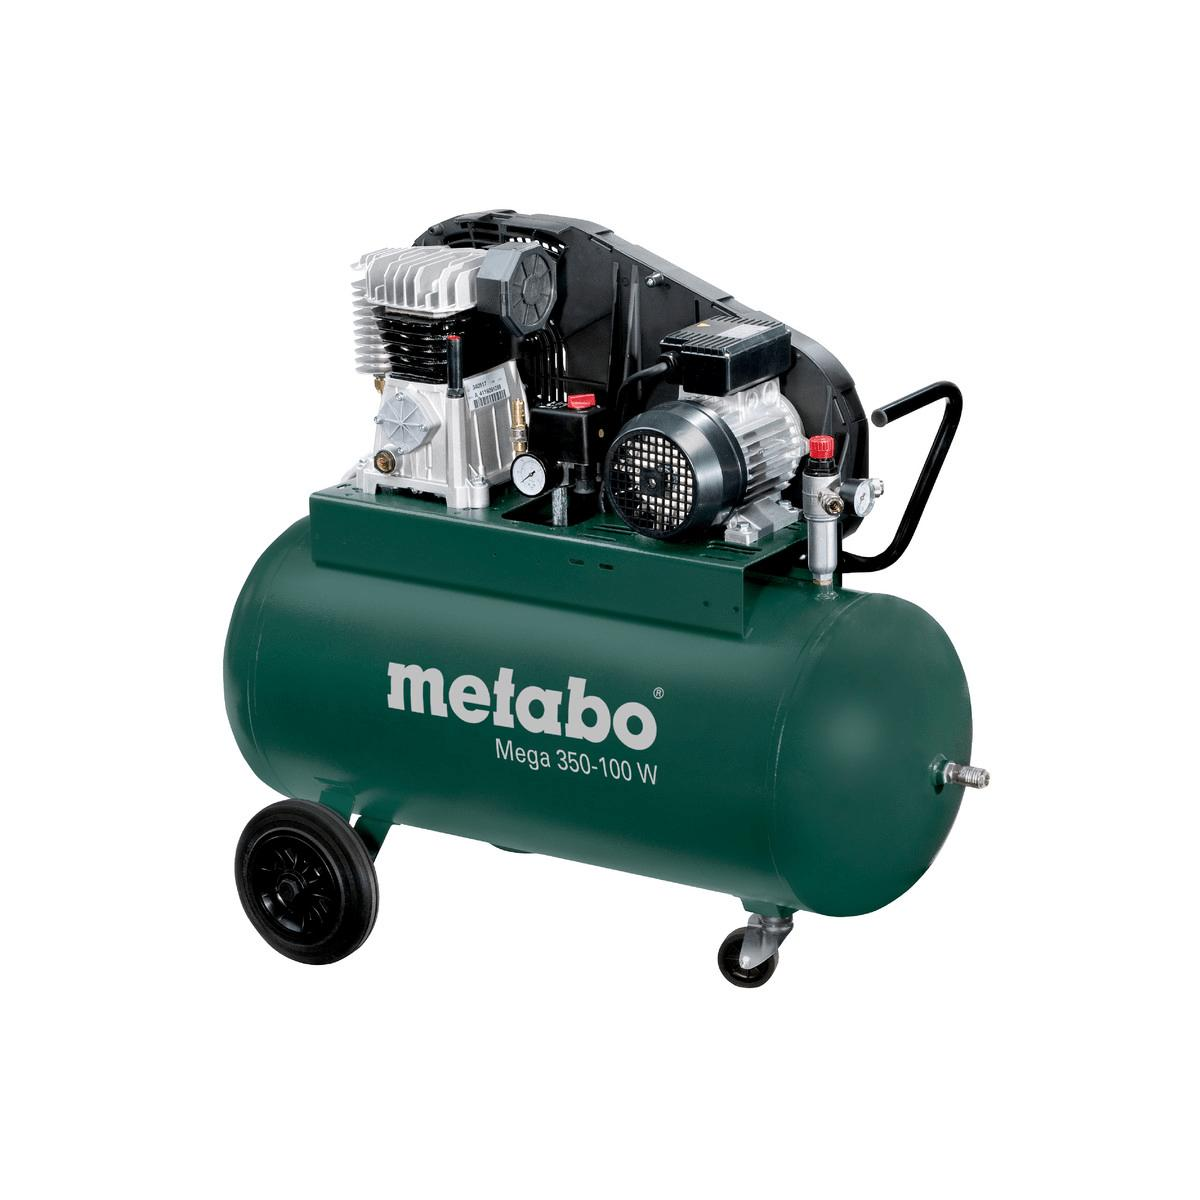 metabo kompressor mega 350 100 w 230v 90 liter 10 bar. Black Bedroom Furniture Sets. Home Design Ideas